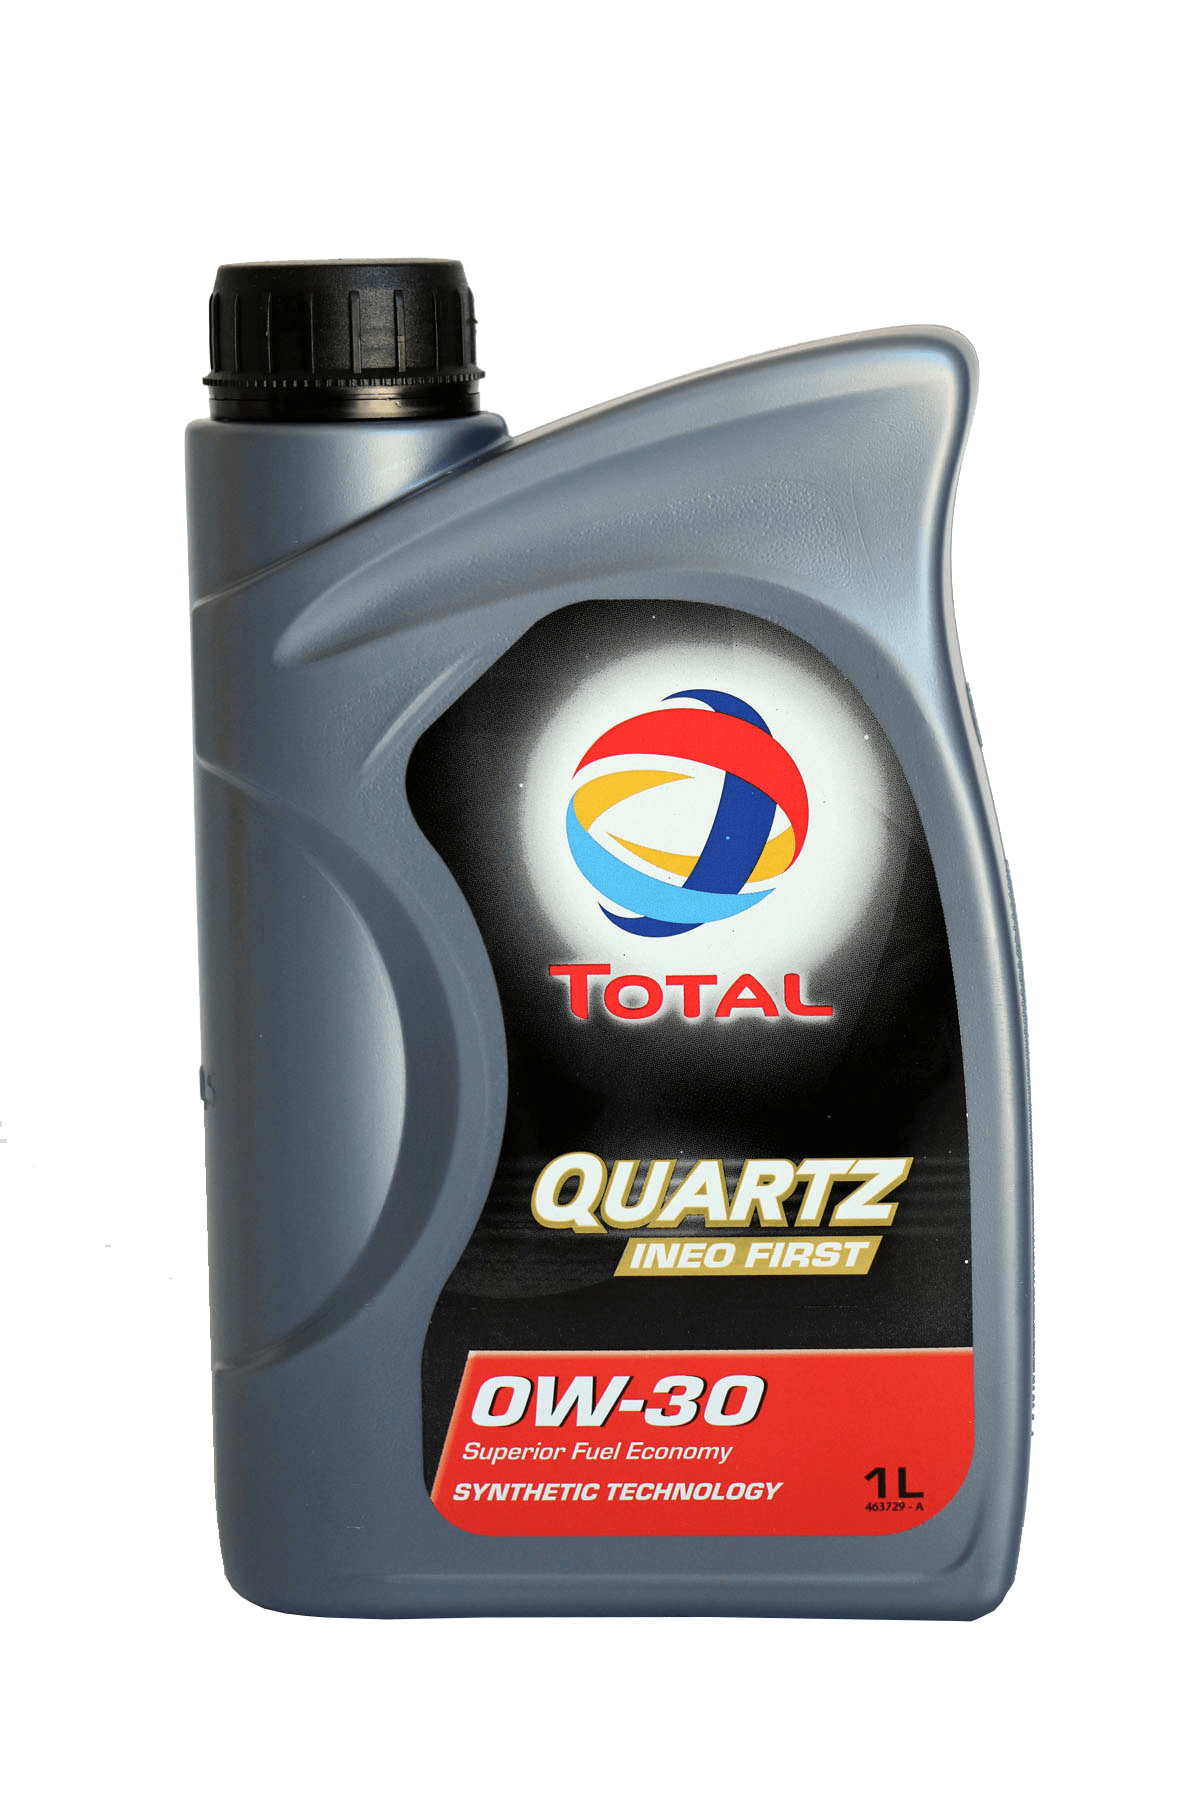 Total Quartz Ineo First 0W-30 Motoröl, 1l